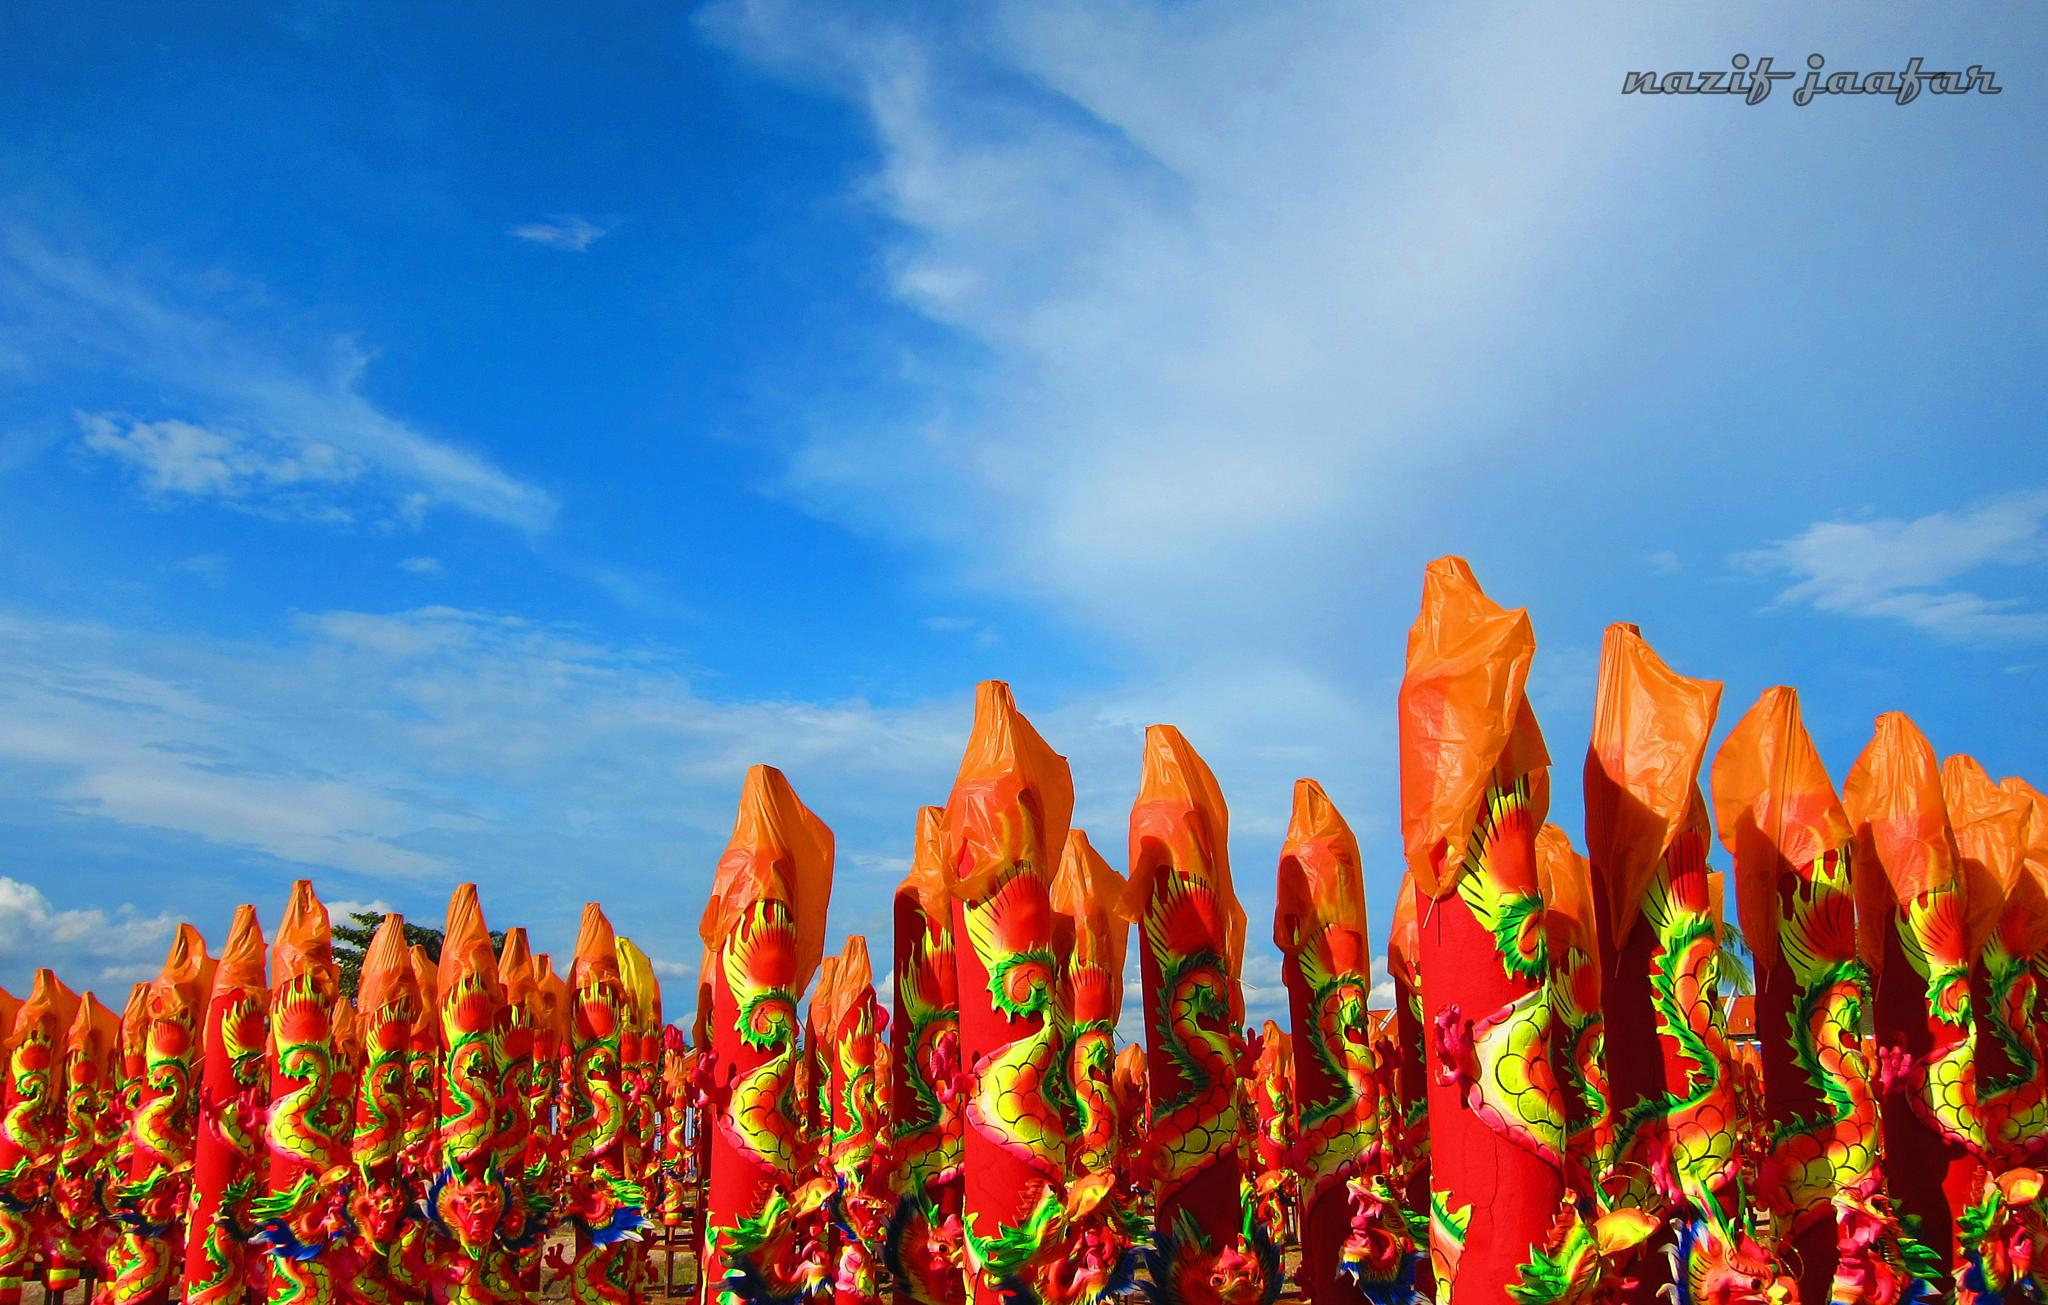 Blue Sky : Red Poles by nazifjaafar